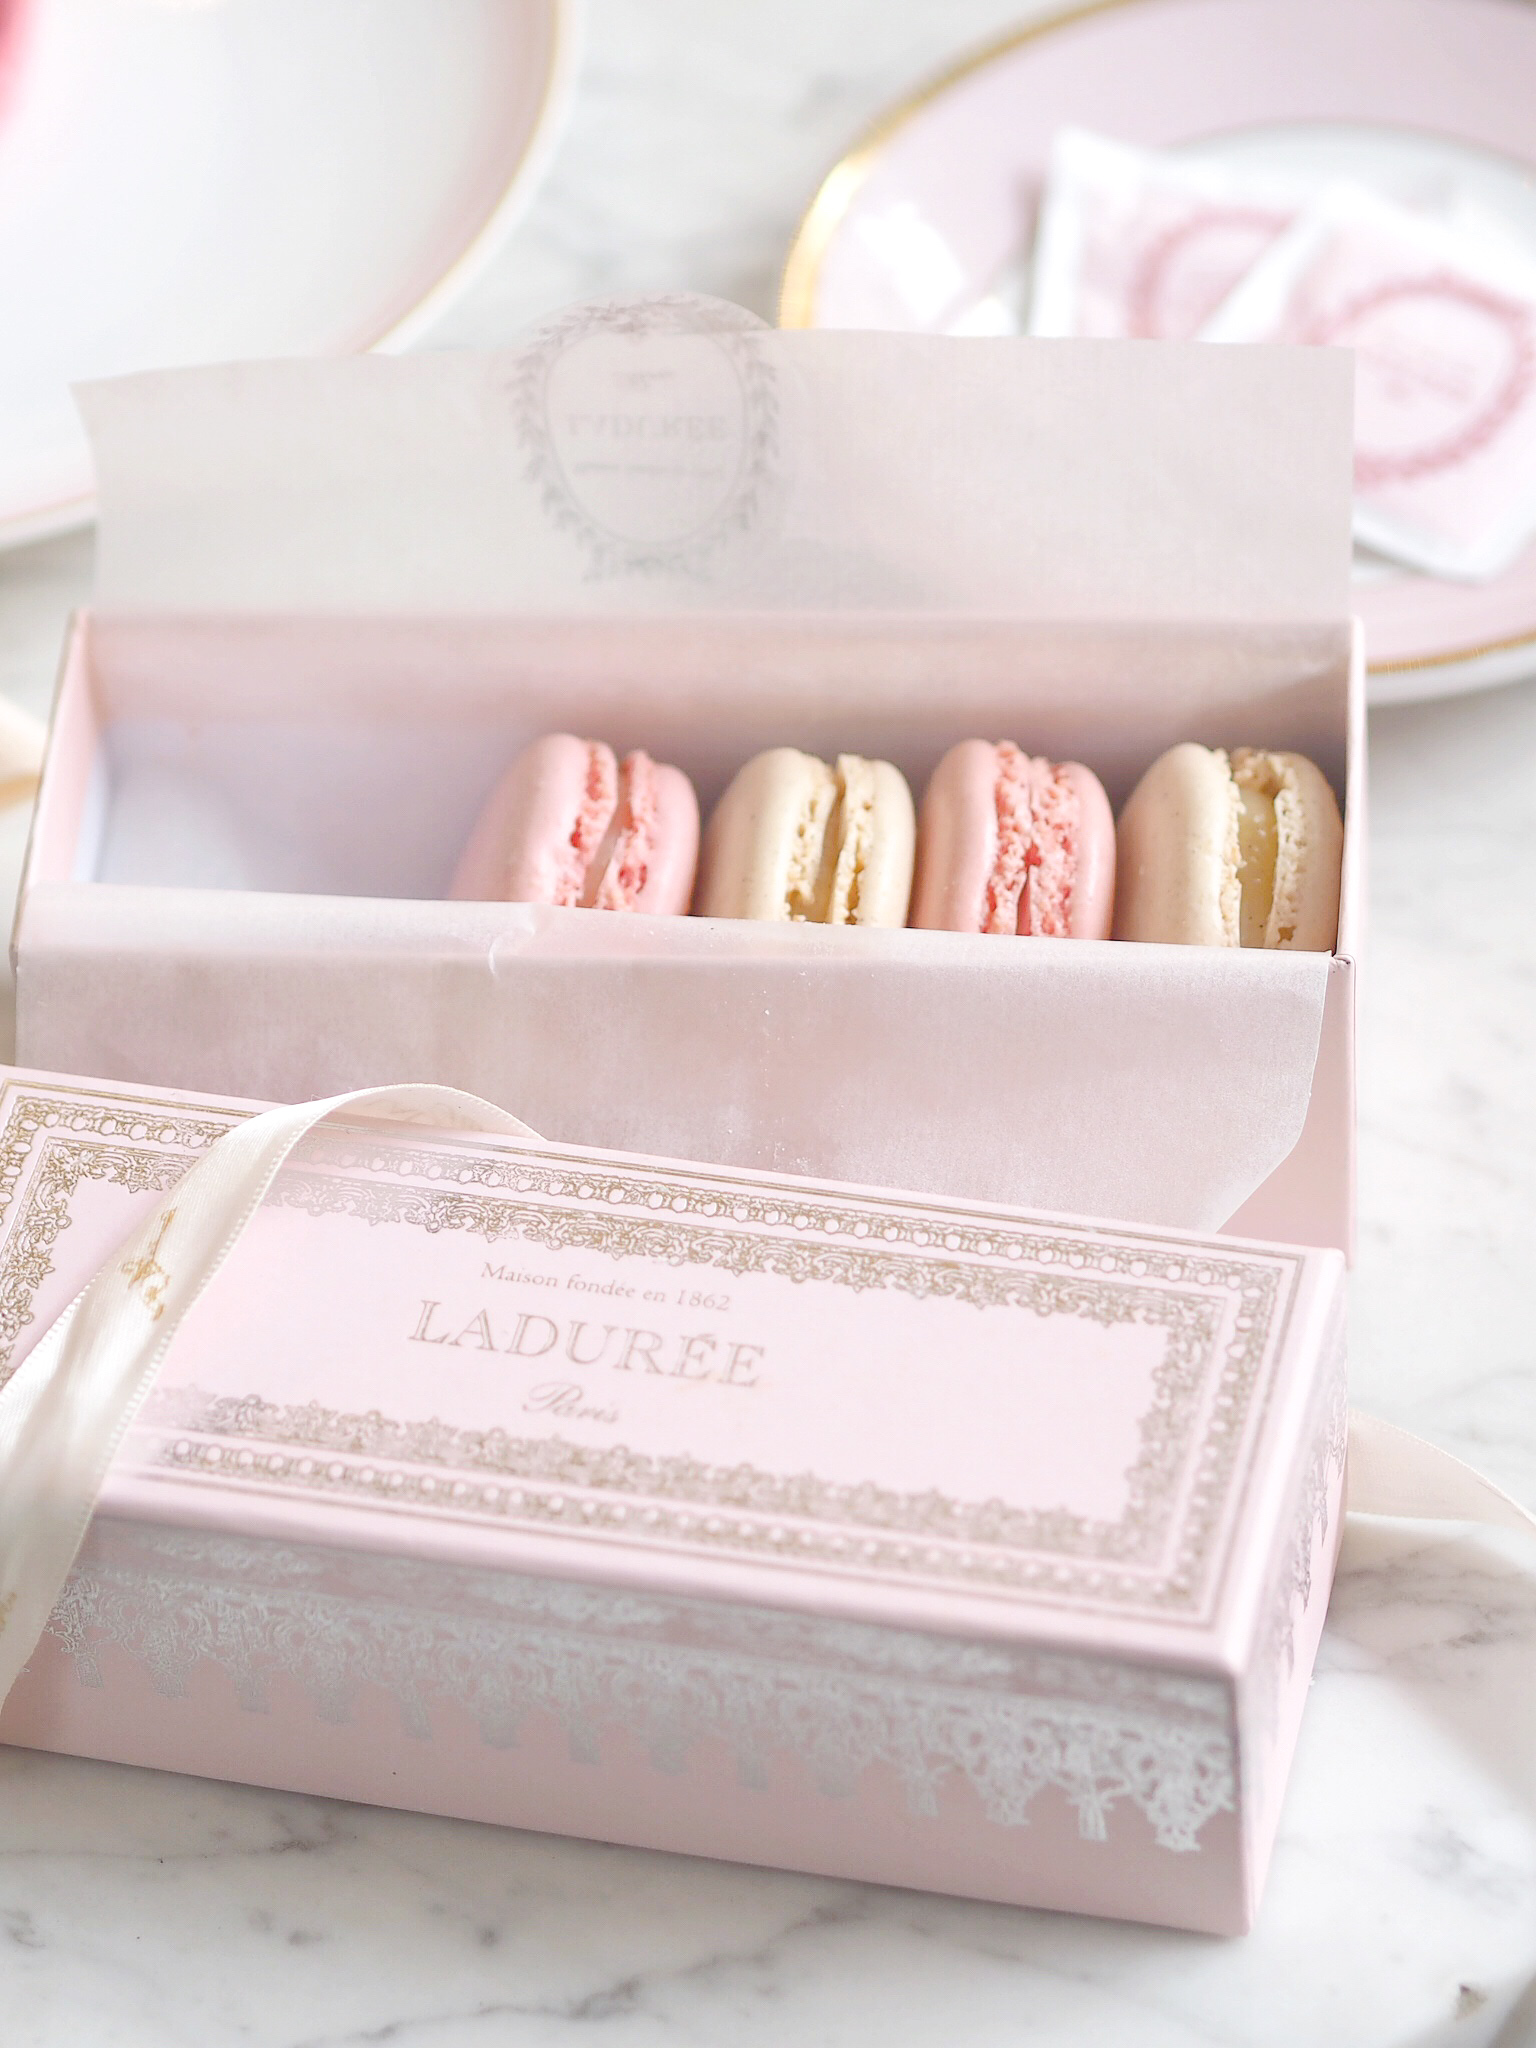 An Afternoon In Mayfair: Opulent Pink Treats In A Ladurée Dreamland, Geranium & Vanilla Macarons | Love Catherine